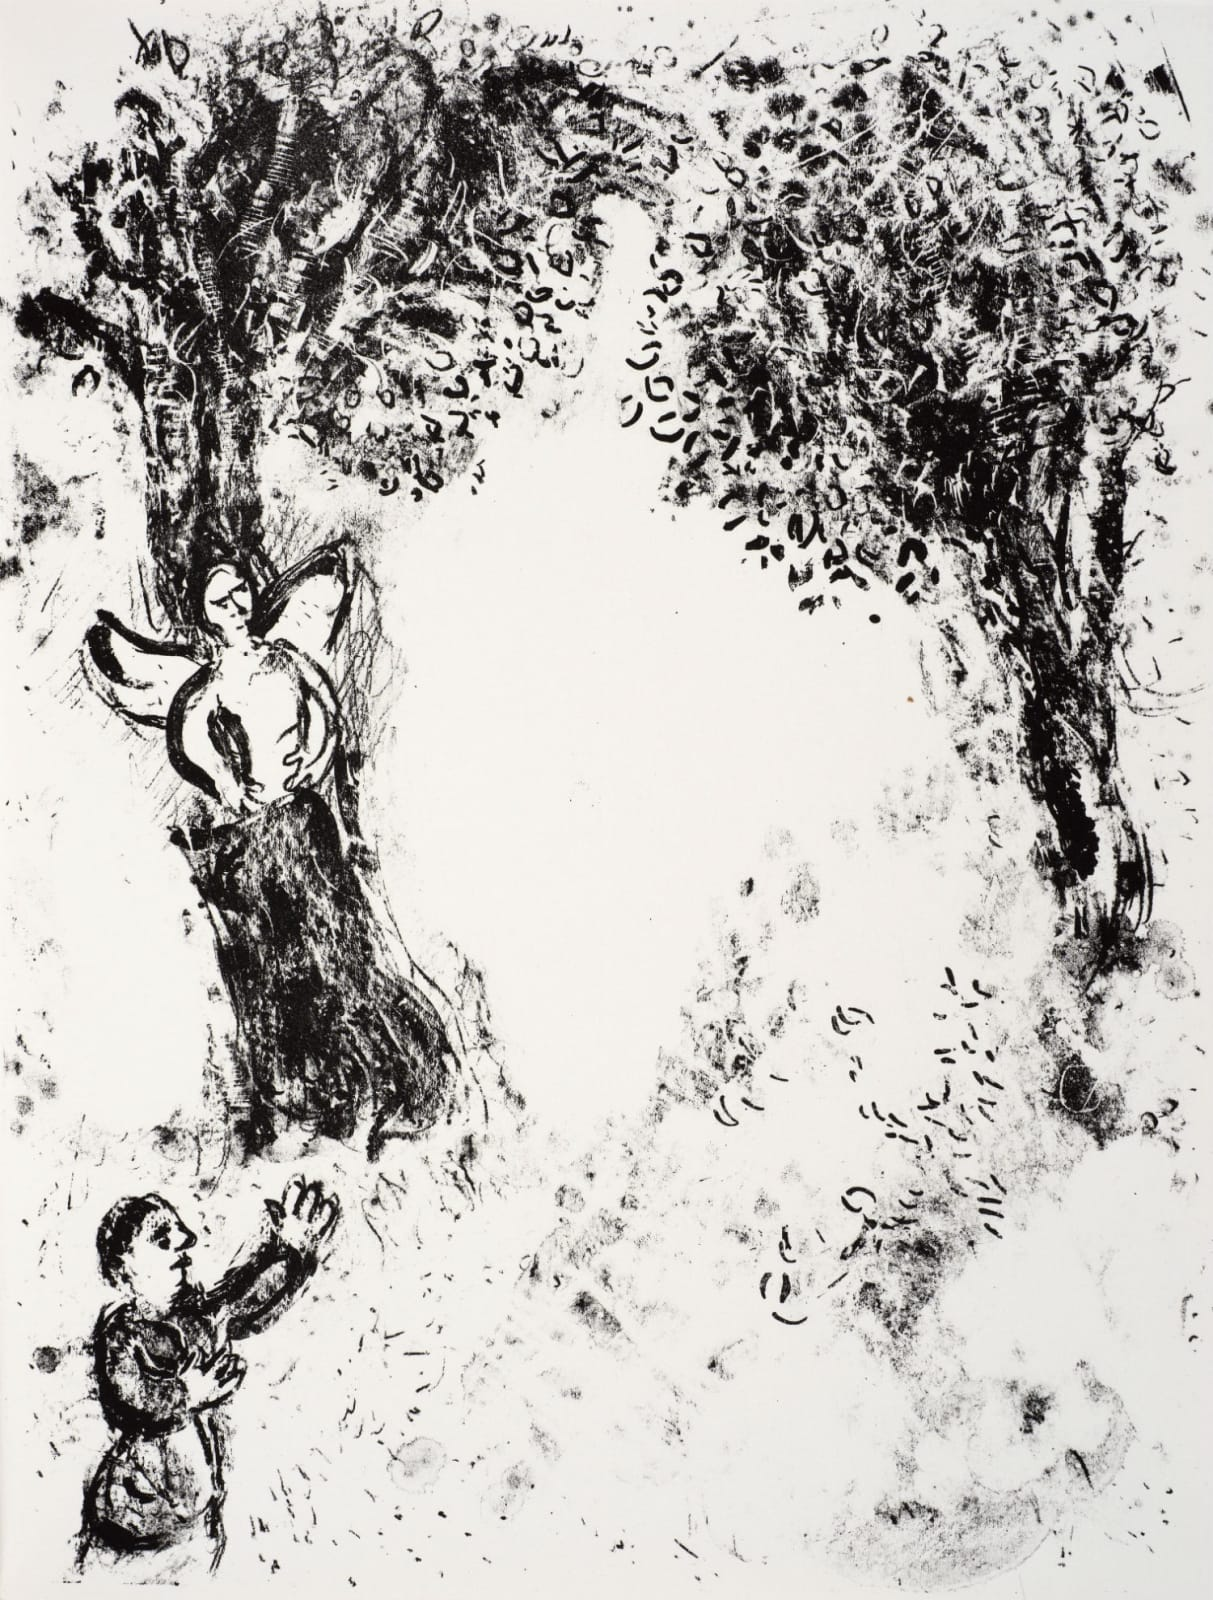 Marc Chagall (1887-1985) Ariel confined in the cloven Pine (Series: Shakespeare The Tempest) 1975 Lithograph 42.5 x 32.5 cm Ben Uri Collection © Marc Chagall estate To see and discover more about this artist click here